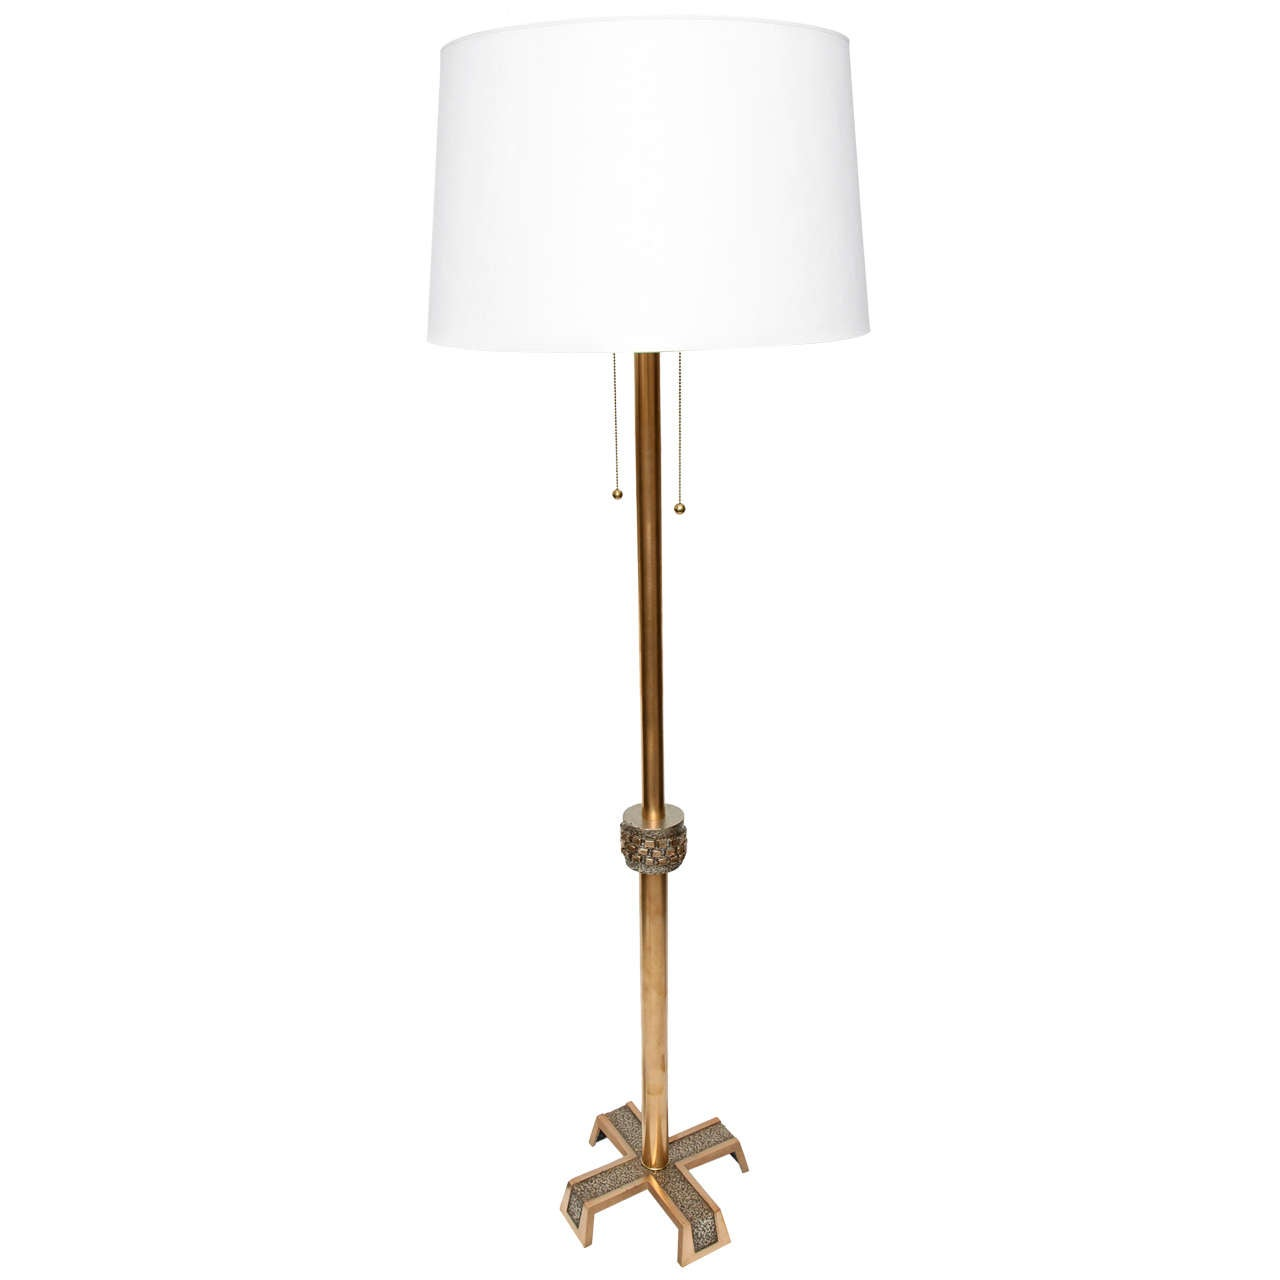 1960s Modernist Architectural Floor Lamp For Sale